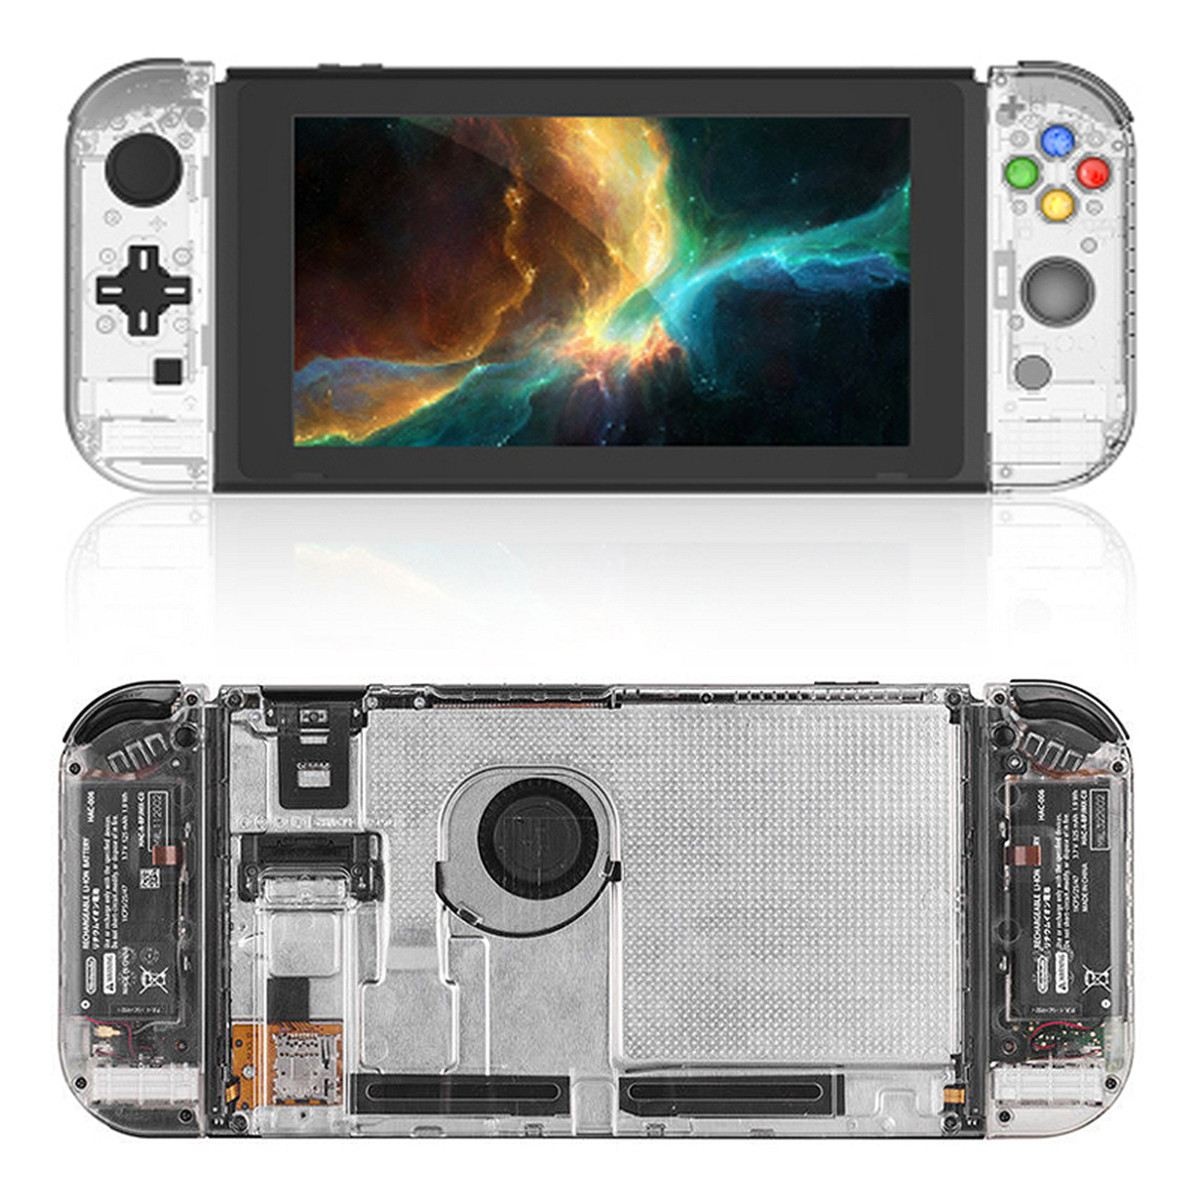 For Nintend Switch Full Set Replacement Housing Shell Case Hnaldheld Game Console Protective Case For Joy-con Controller bossa nova bossa nova толстовка крутозавр с капюшоном хаки